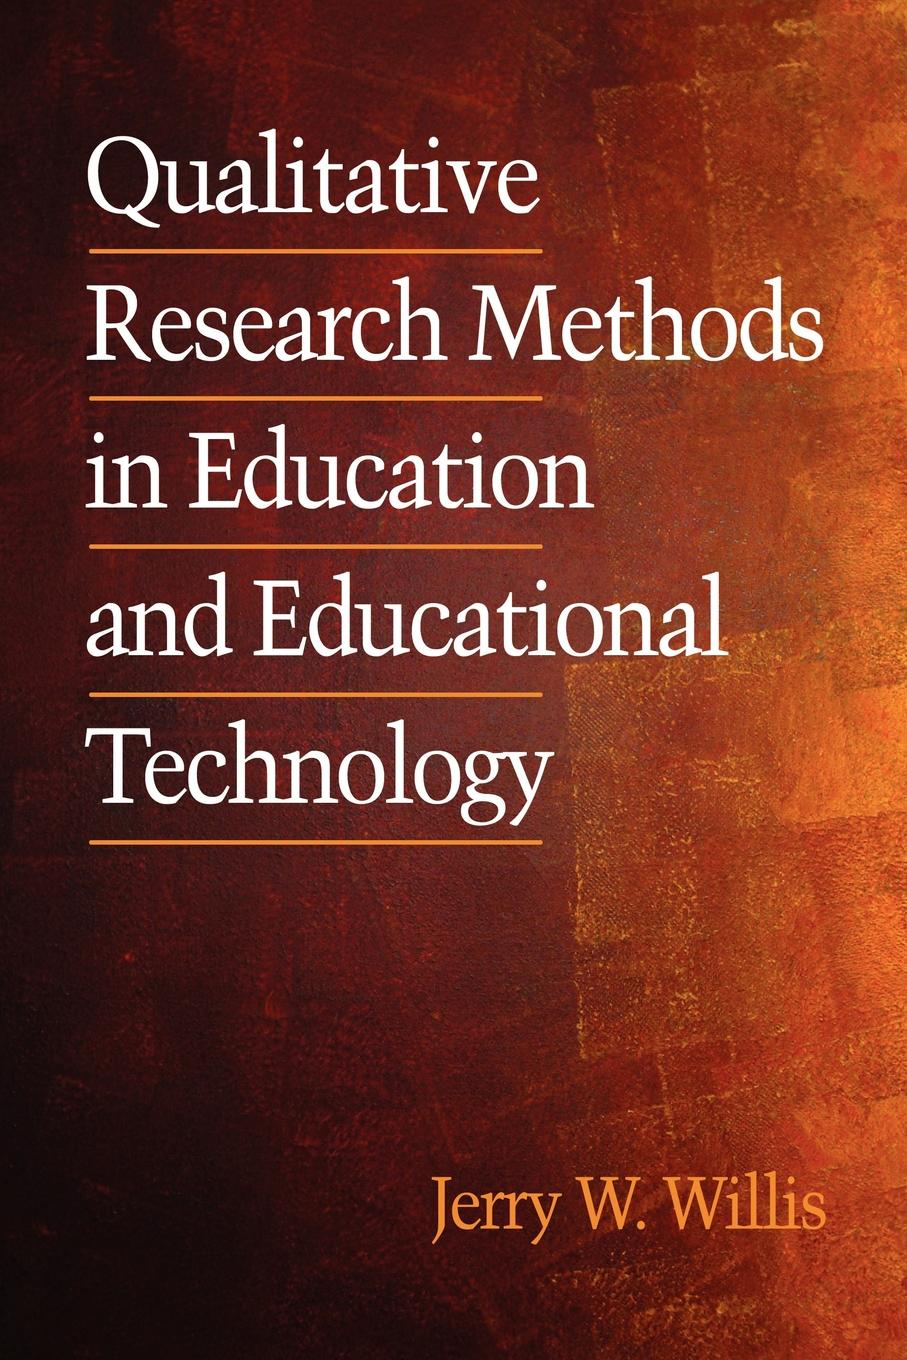 лучшая цена Jerry Willis Qualitative Research Methods in Education and Educational Technology (PB)